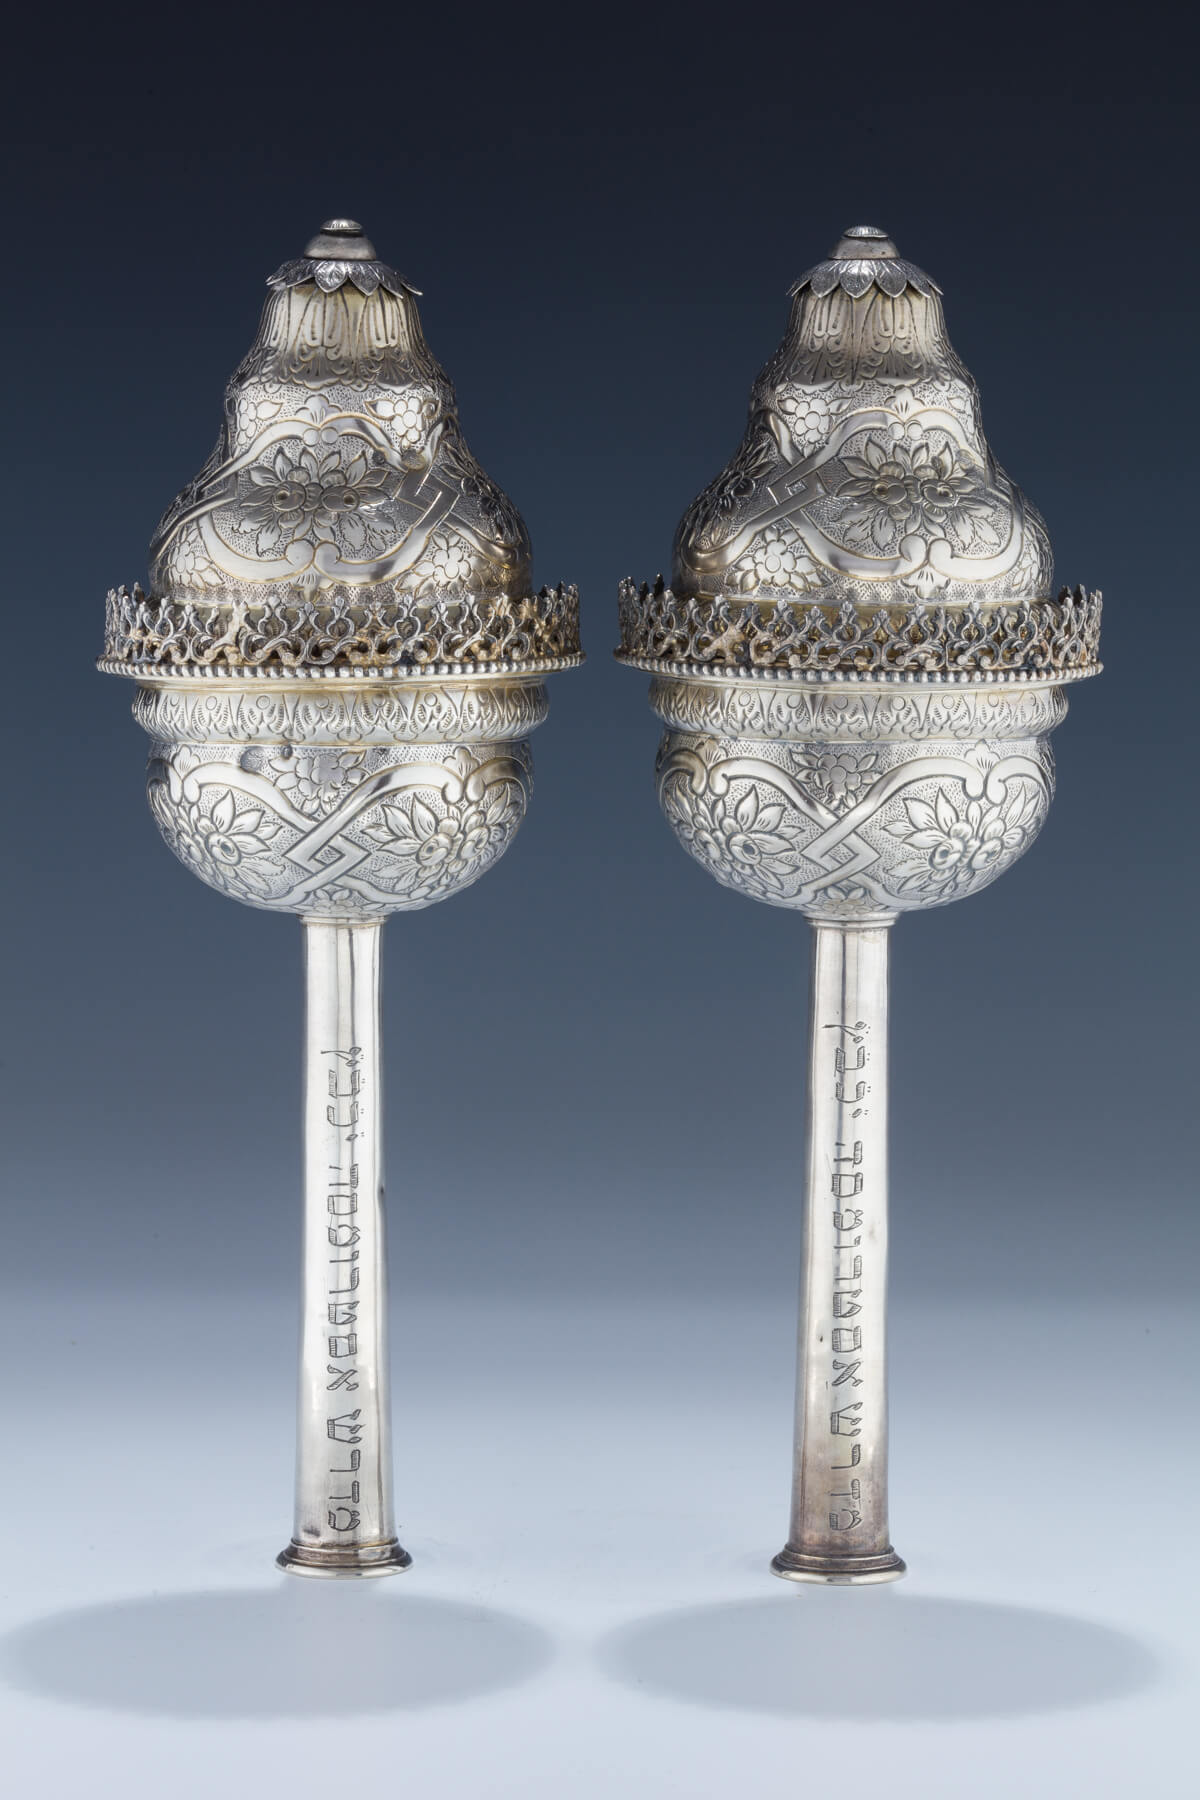 137. A Pair of Very Rare Silver Torah Finials